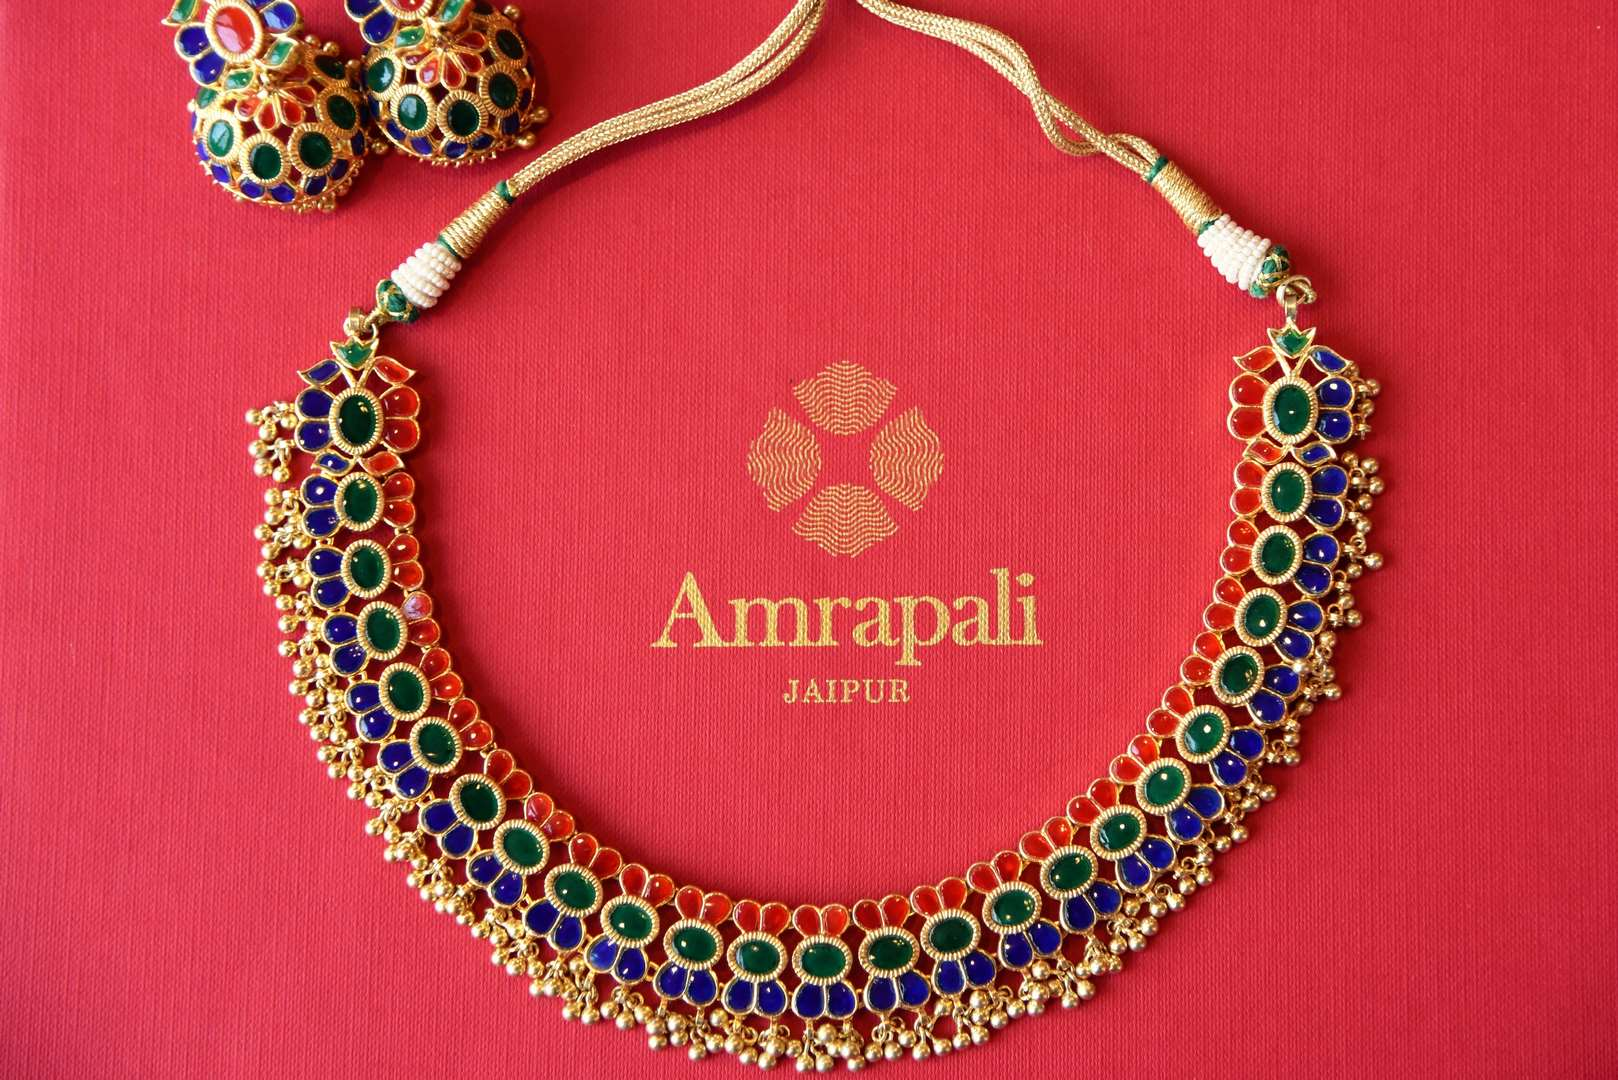 Shop Amrapali silver gold-plated multicolored glass necklace set online in USA from Pure Elegance. Complete your traditional look with an exclusive collection of Indian traditional jewelry, silver gold plated necklaces, wedding jewelry available at our exclusive Indian fashion store in USA and also on our online store. Shop now.-flatlay